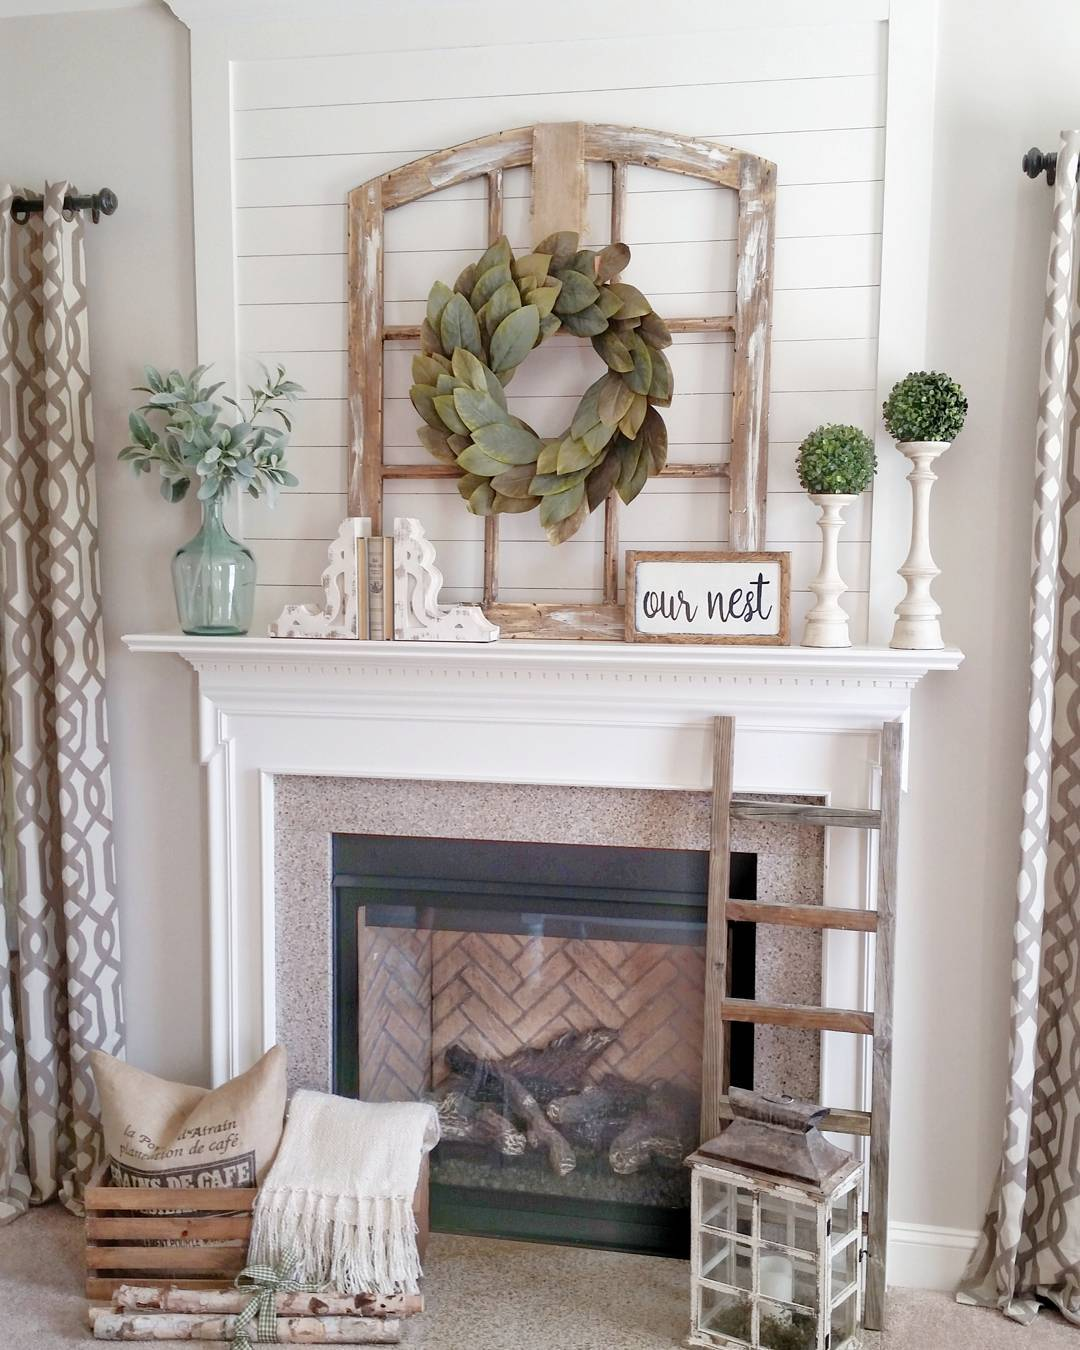 Simple Mantel Decor For Summer With Greenery